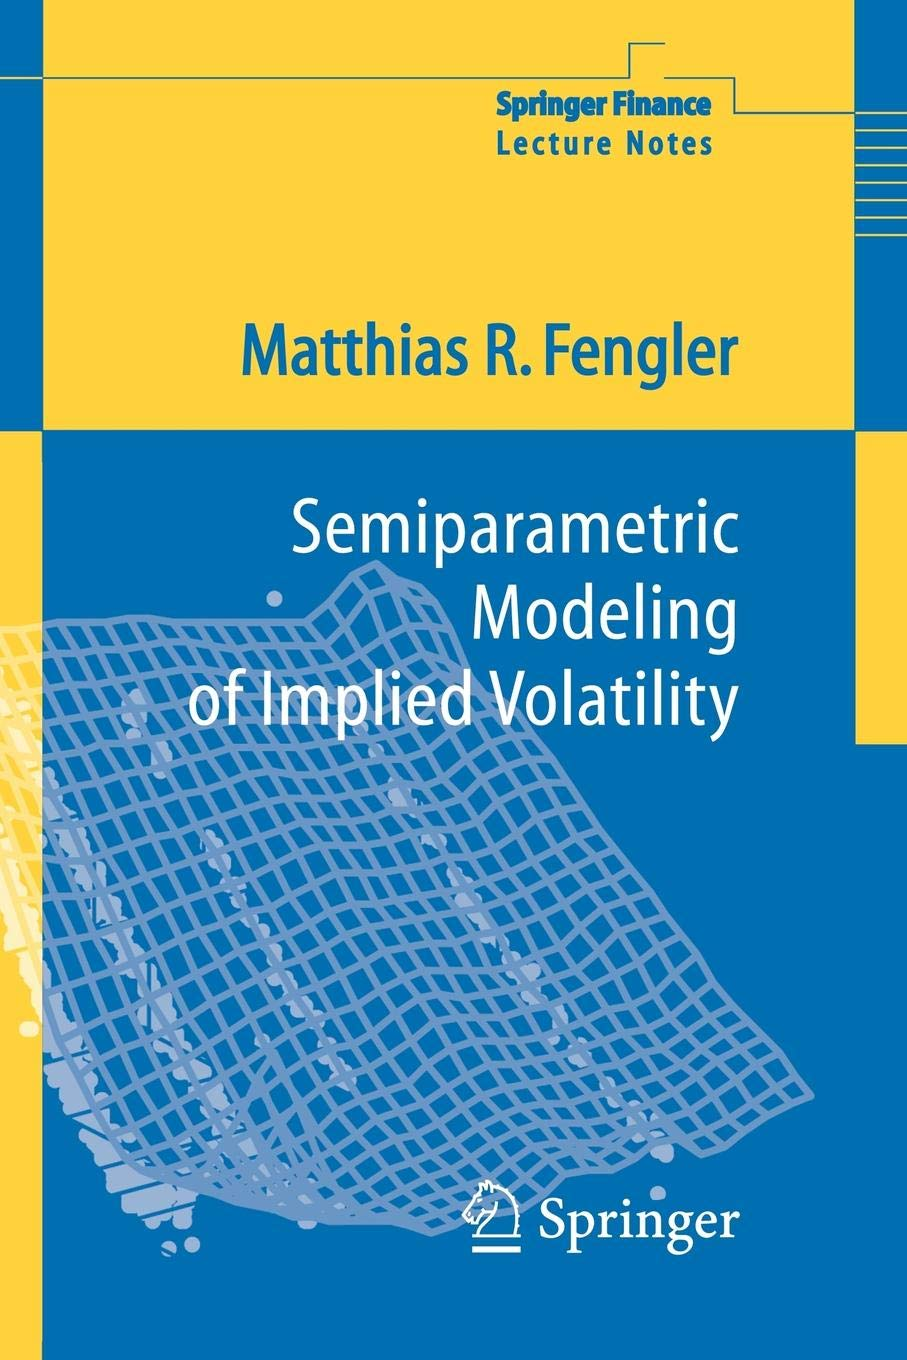 Semiparametric Modeling of Implied Volatility (Springer